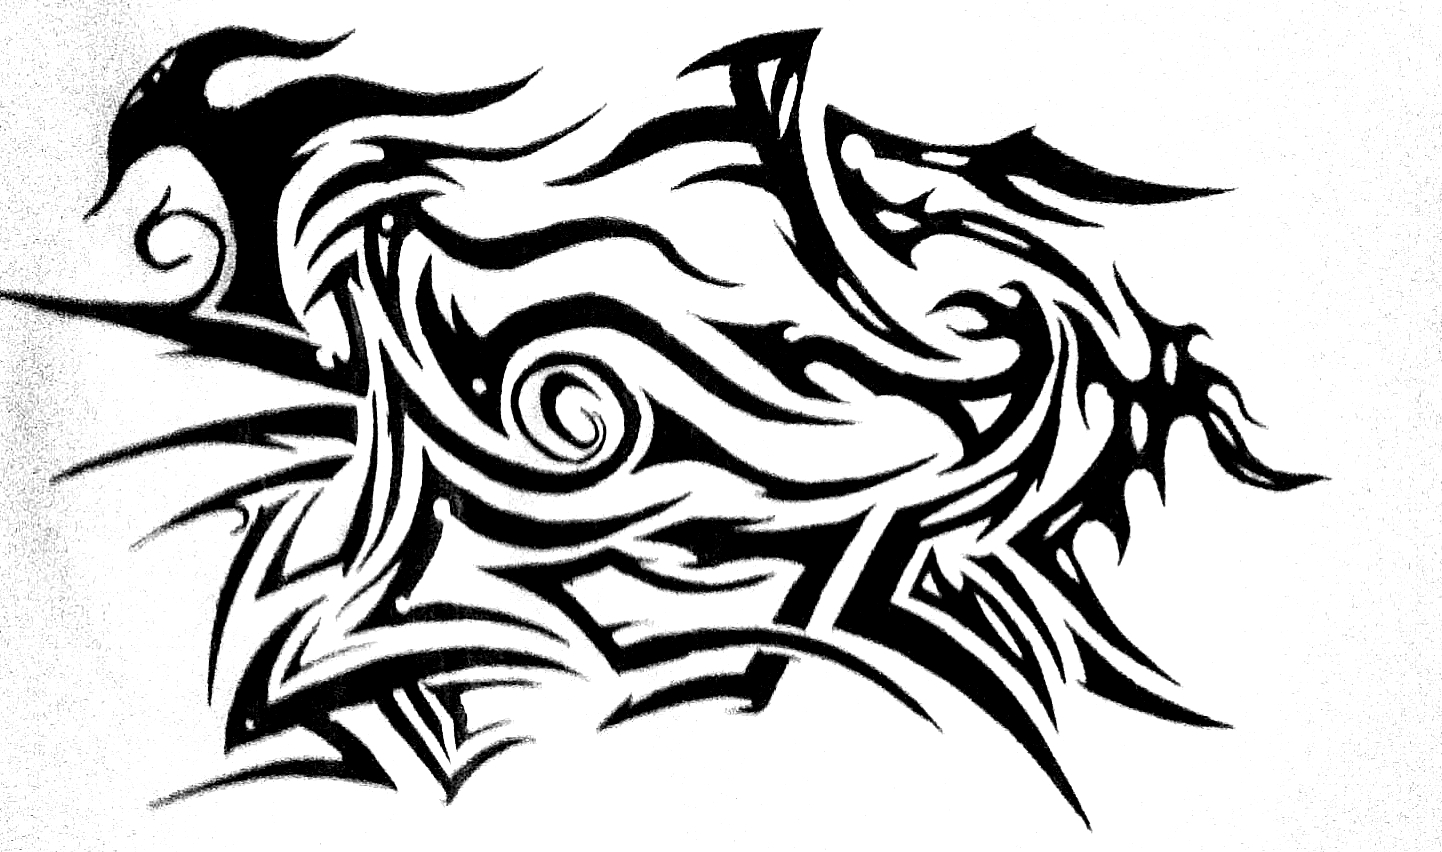 Traditional Tattoo Line Drawing : Tattoo tumblr drawing at getdrawings free for personal use